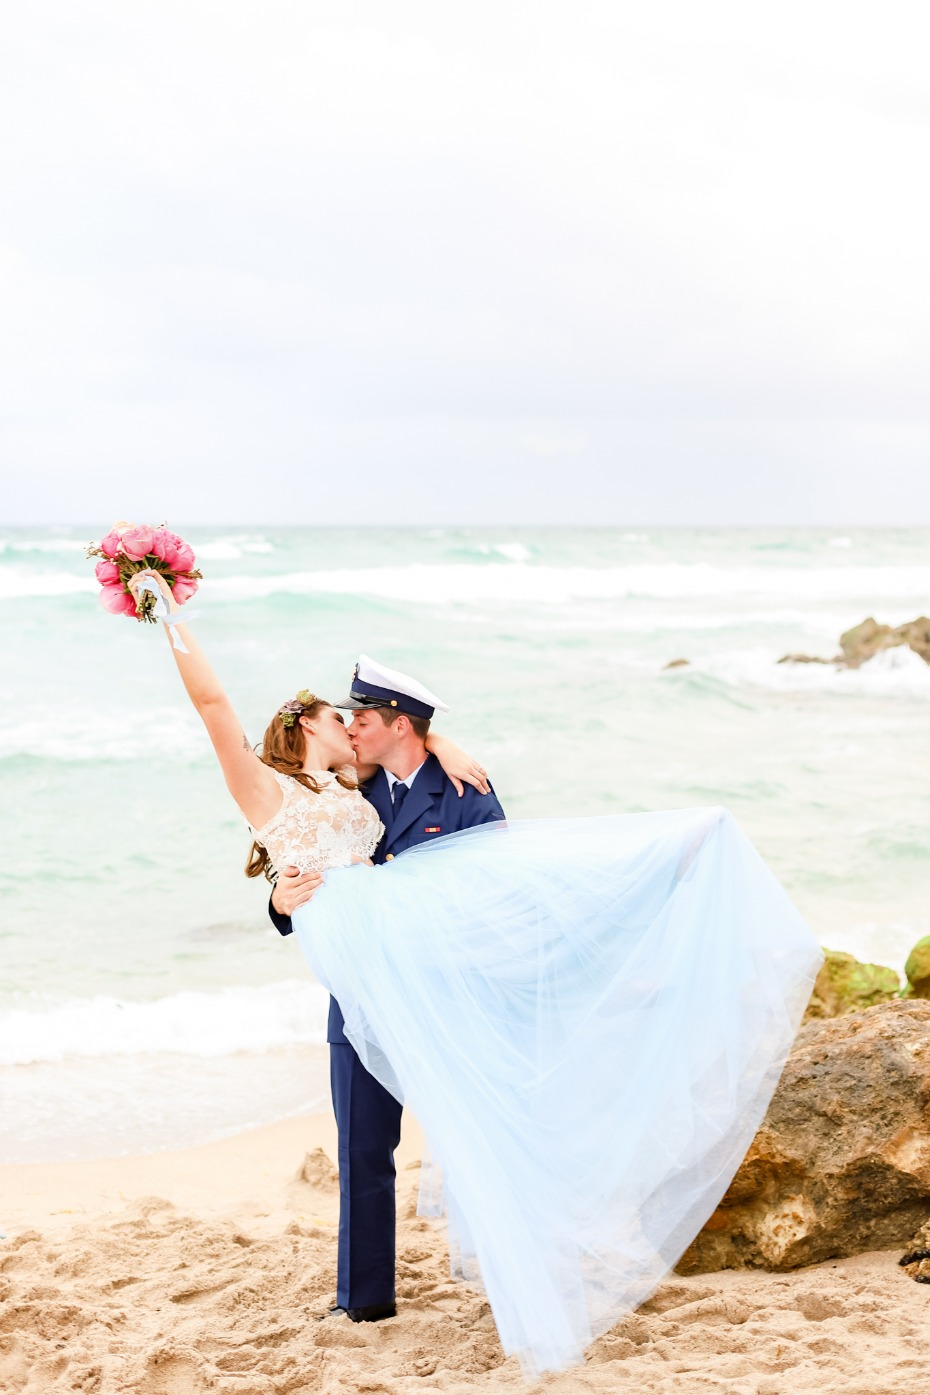 Coastal Florida wedding ideas